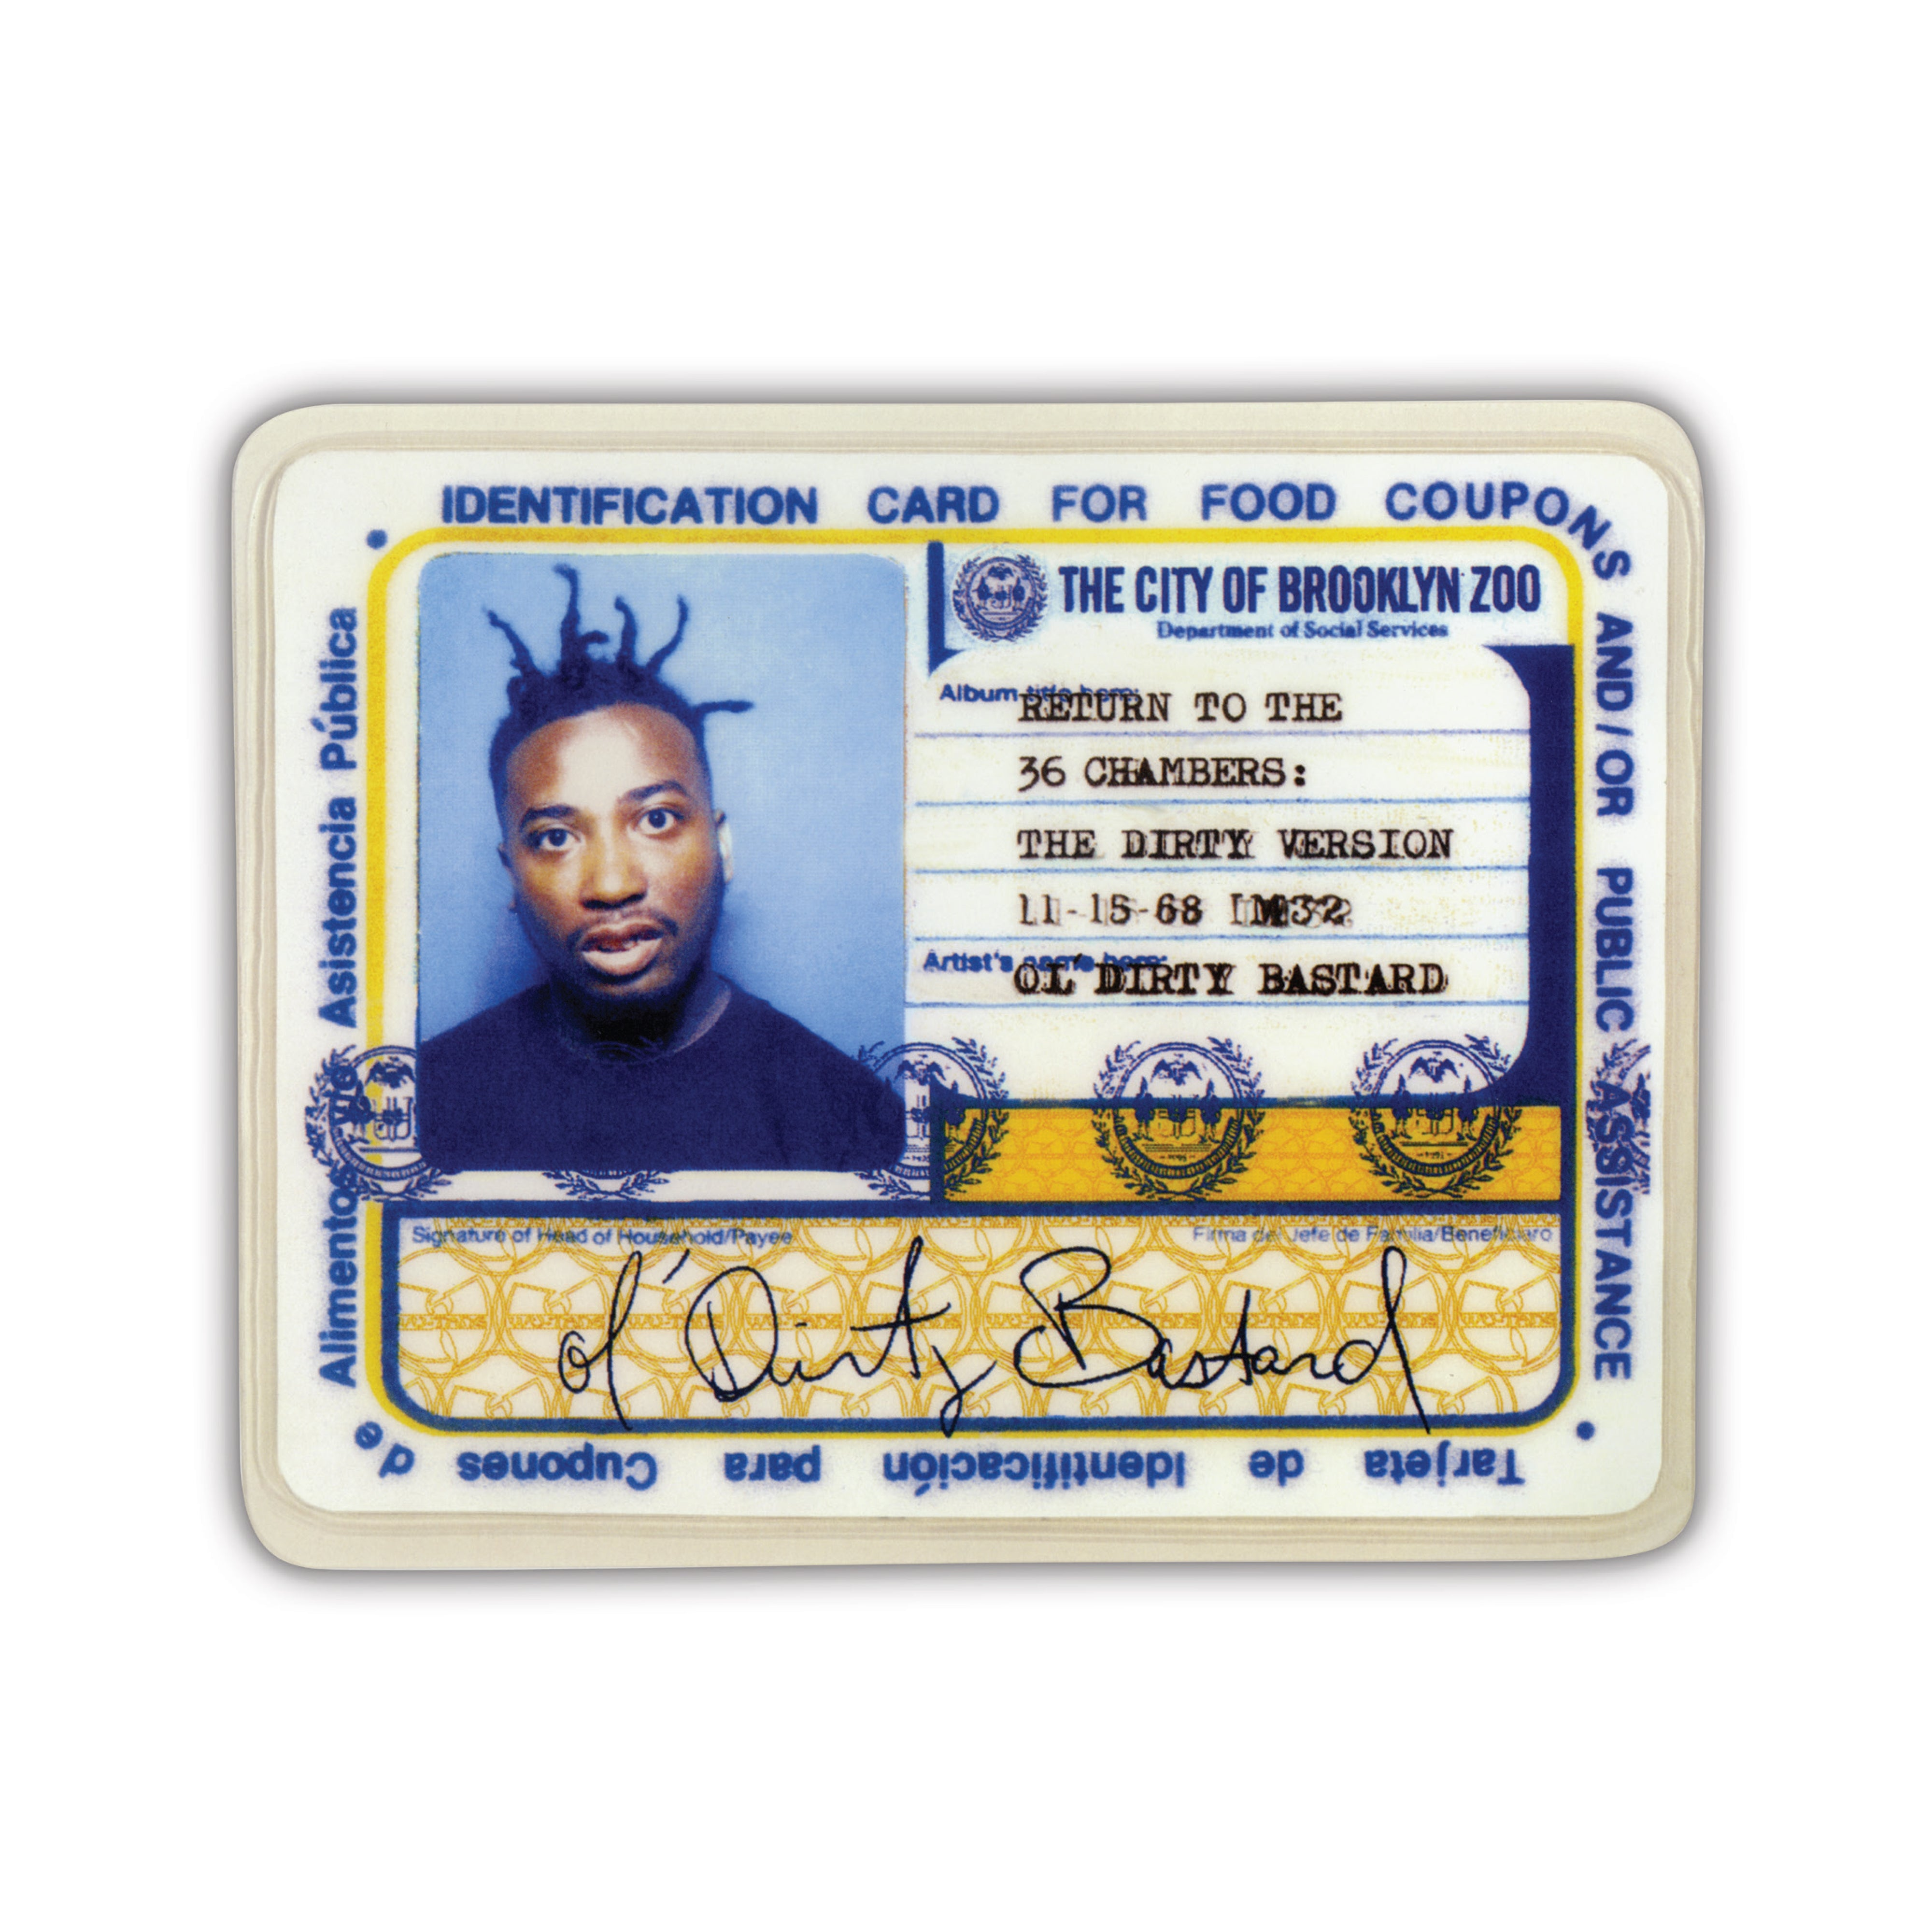 "Ol' Dirty Bastard - Return To The 36 Chambers: The Dirty Version (25th Anniversary Edition) (RSD 2020 Drop Two) 9x7"" Colour Vinyl Box Set"